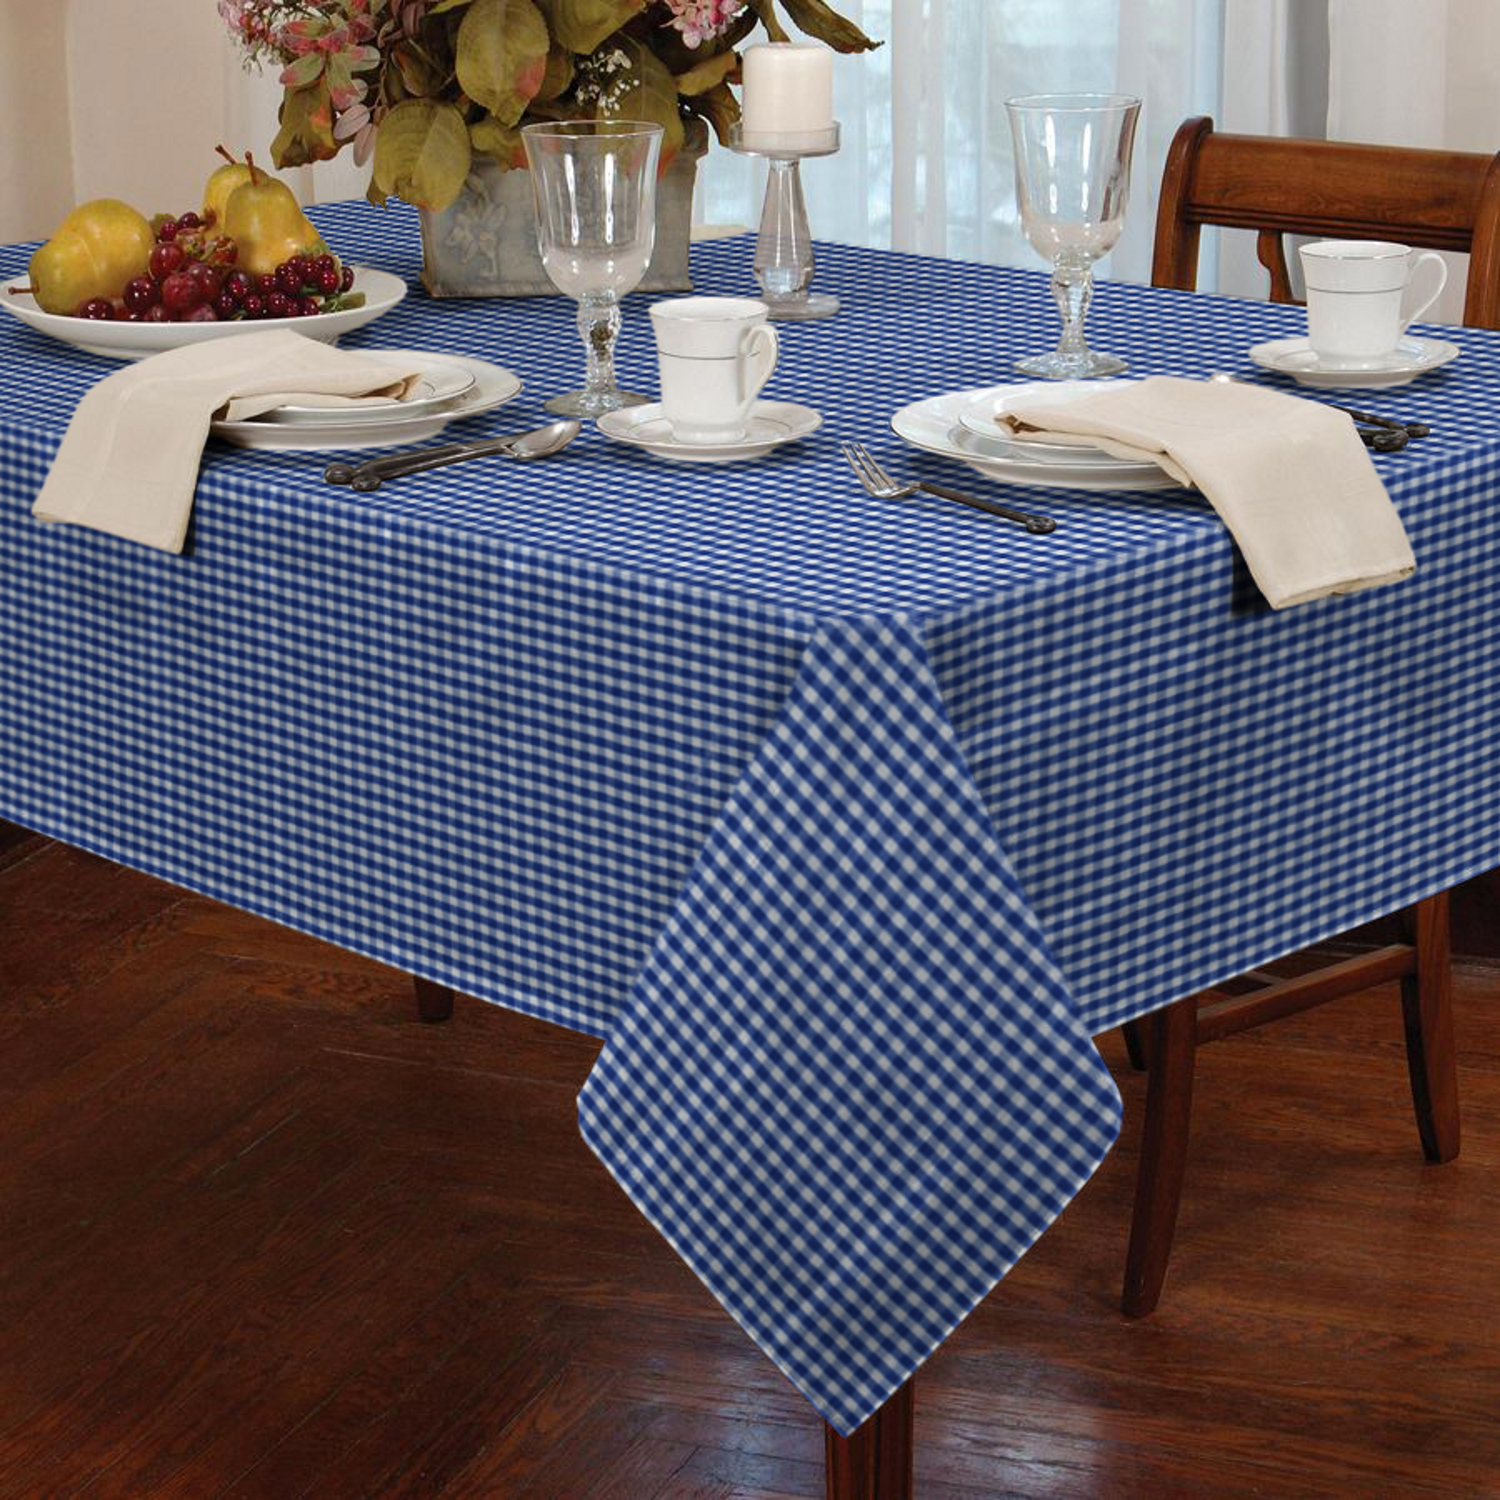 Gentil Garden Picnic Gingham Check Tablecloth Dining Room Table